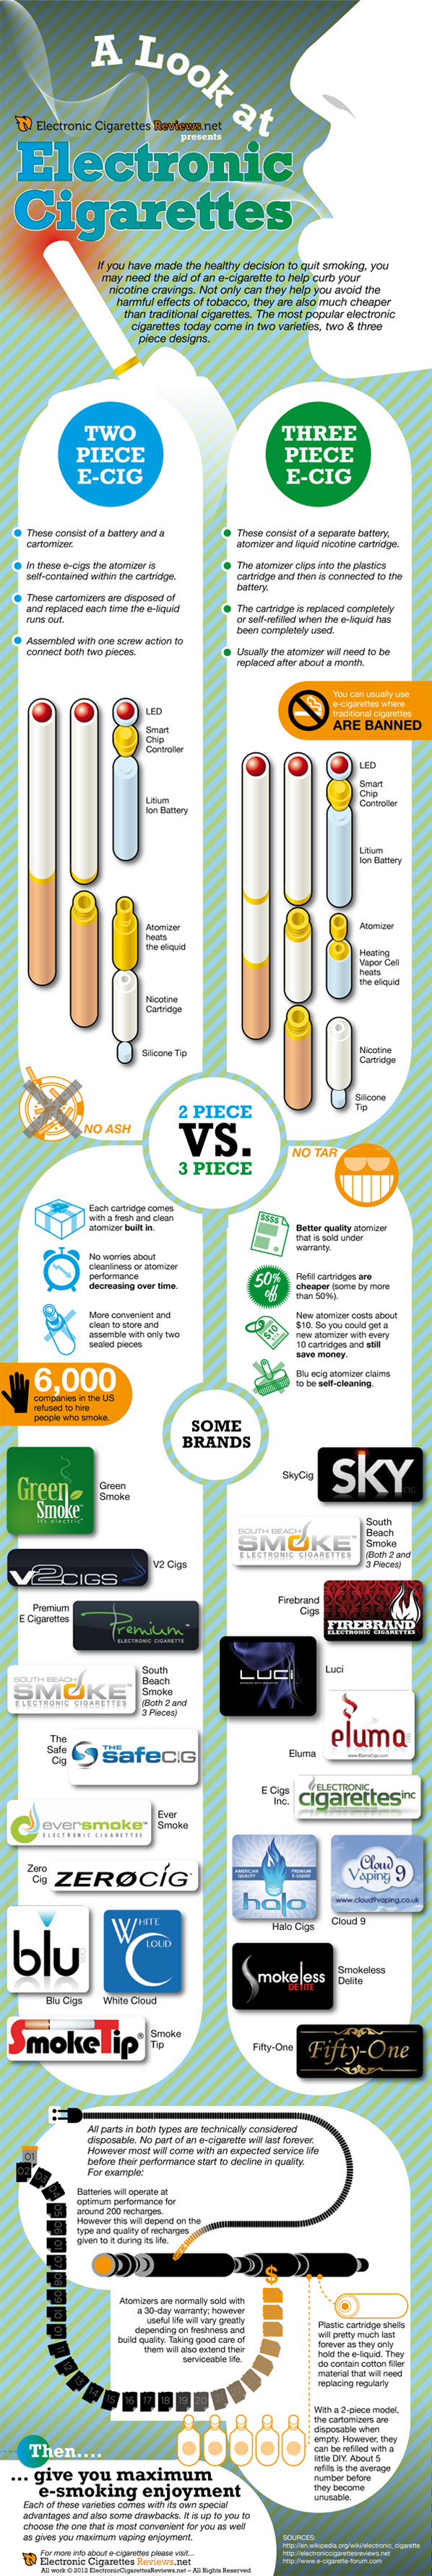 Electronic Cigarettes Review-infographic